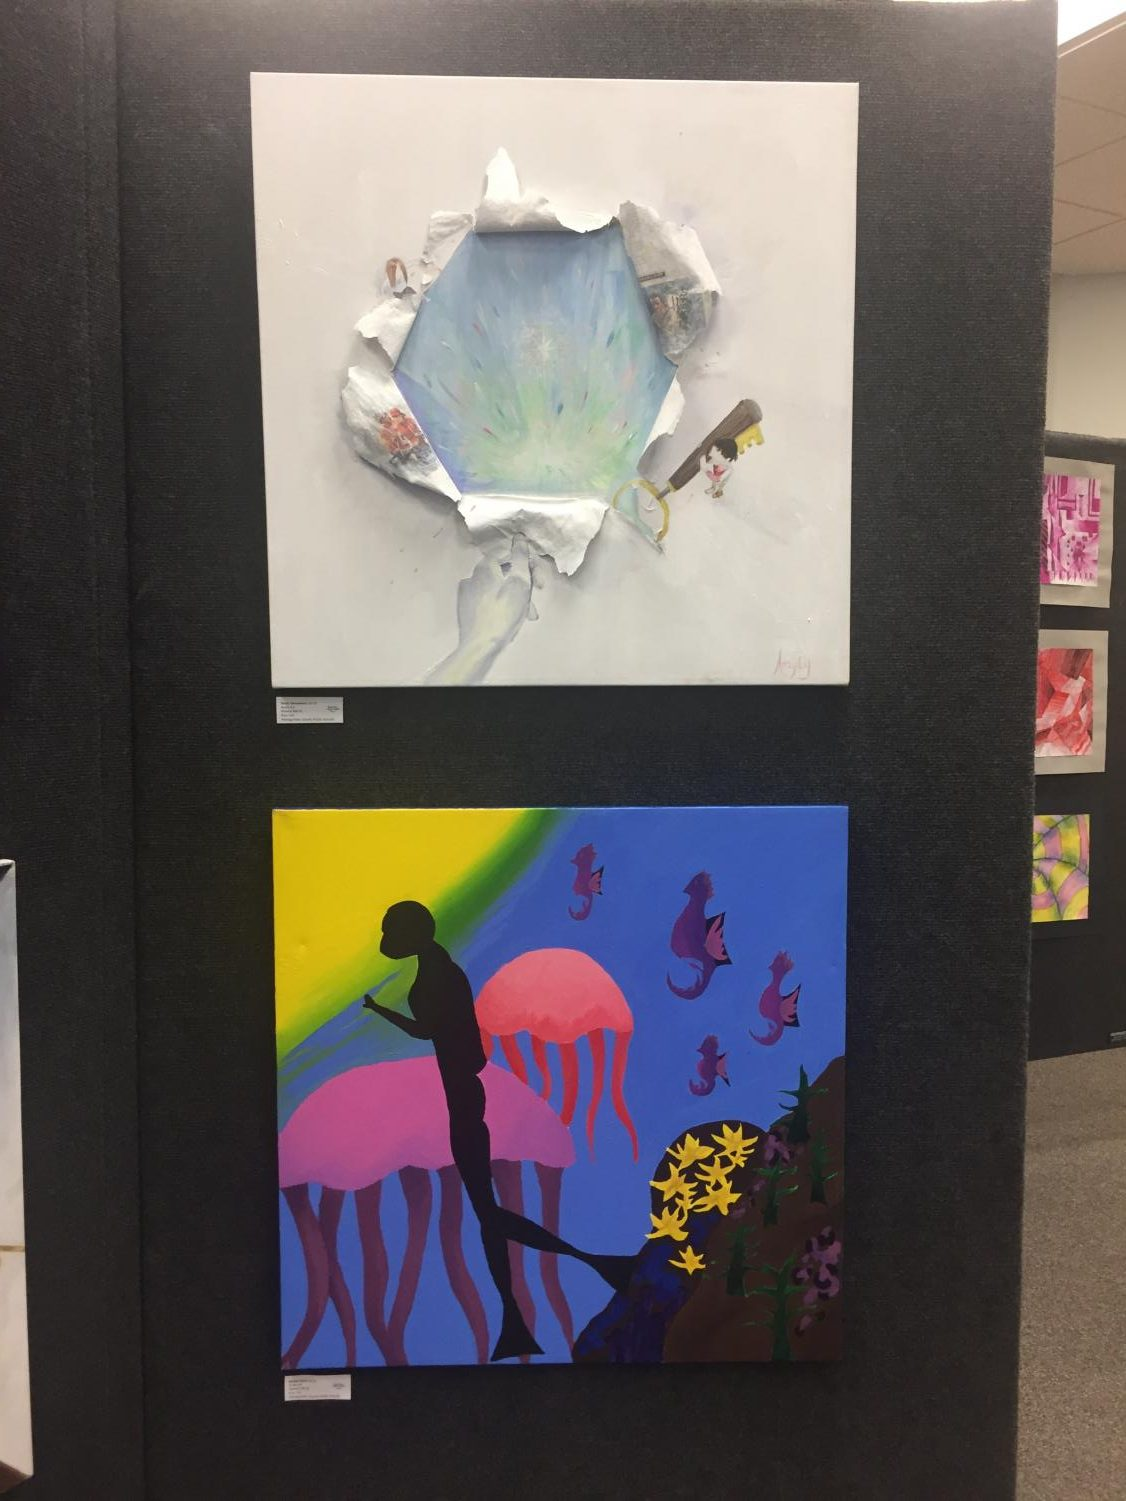 Painting+by+Junior+Natalie+Helsel+of+an+underwater+diver+%28bottom%29+and+Artwork+by+Sophomore+Tanya+Yahouedeou+of+a+hole+ripped+in+a+canvas+to+show+a+colorful+painting+%28top%29+in+the+Watkins+Mill+High+School+Art+Show+2019